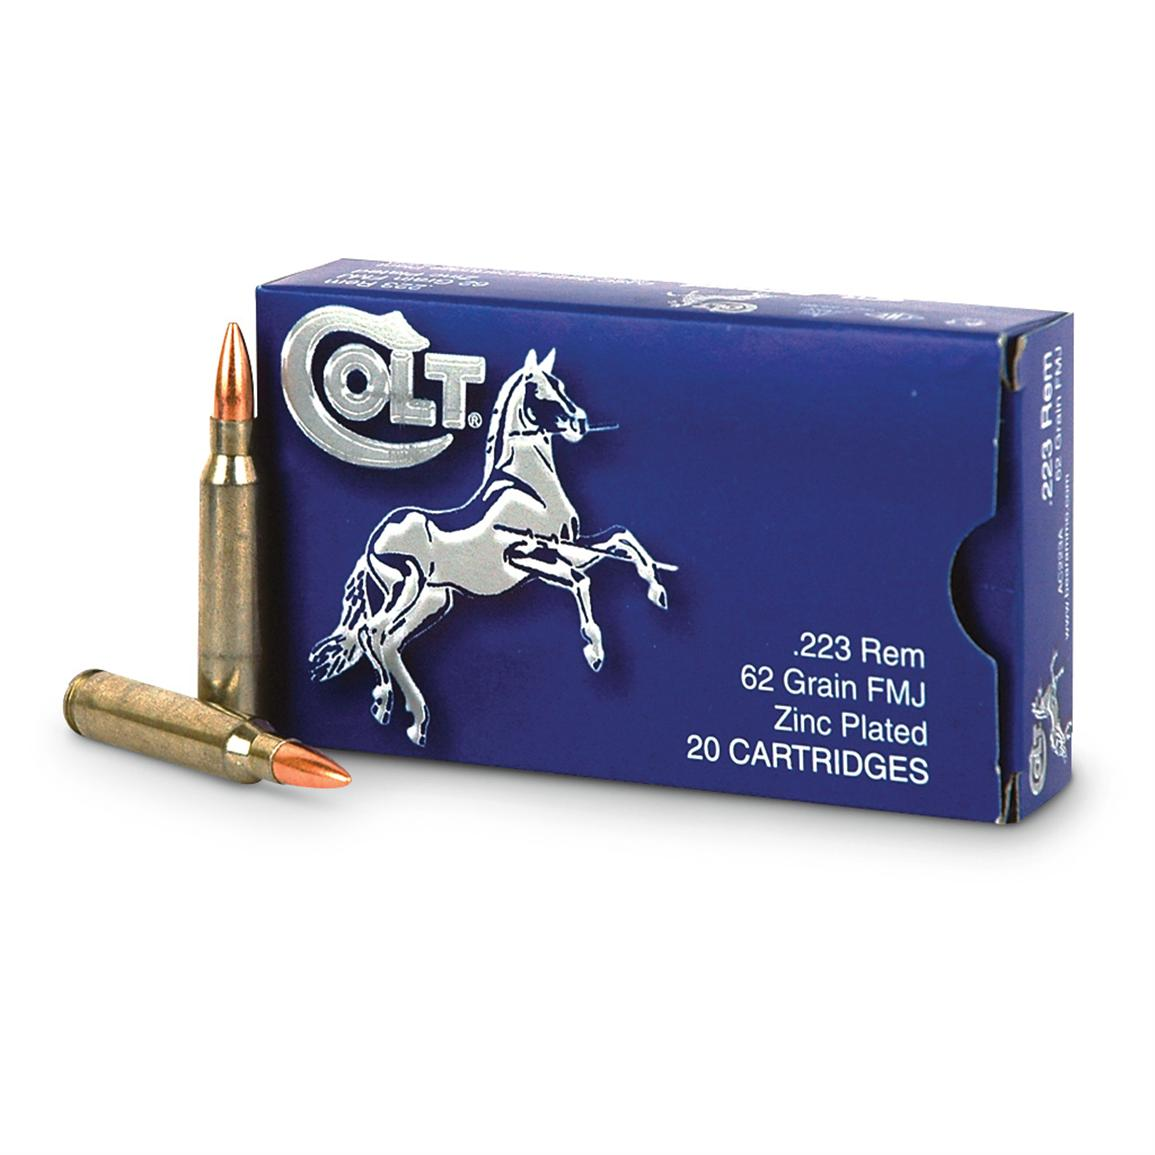 20 rounds Colt .223 Rem. 62 Grain FMJ Zinc-plated steel case Ammo